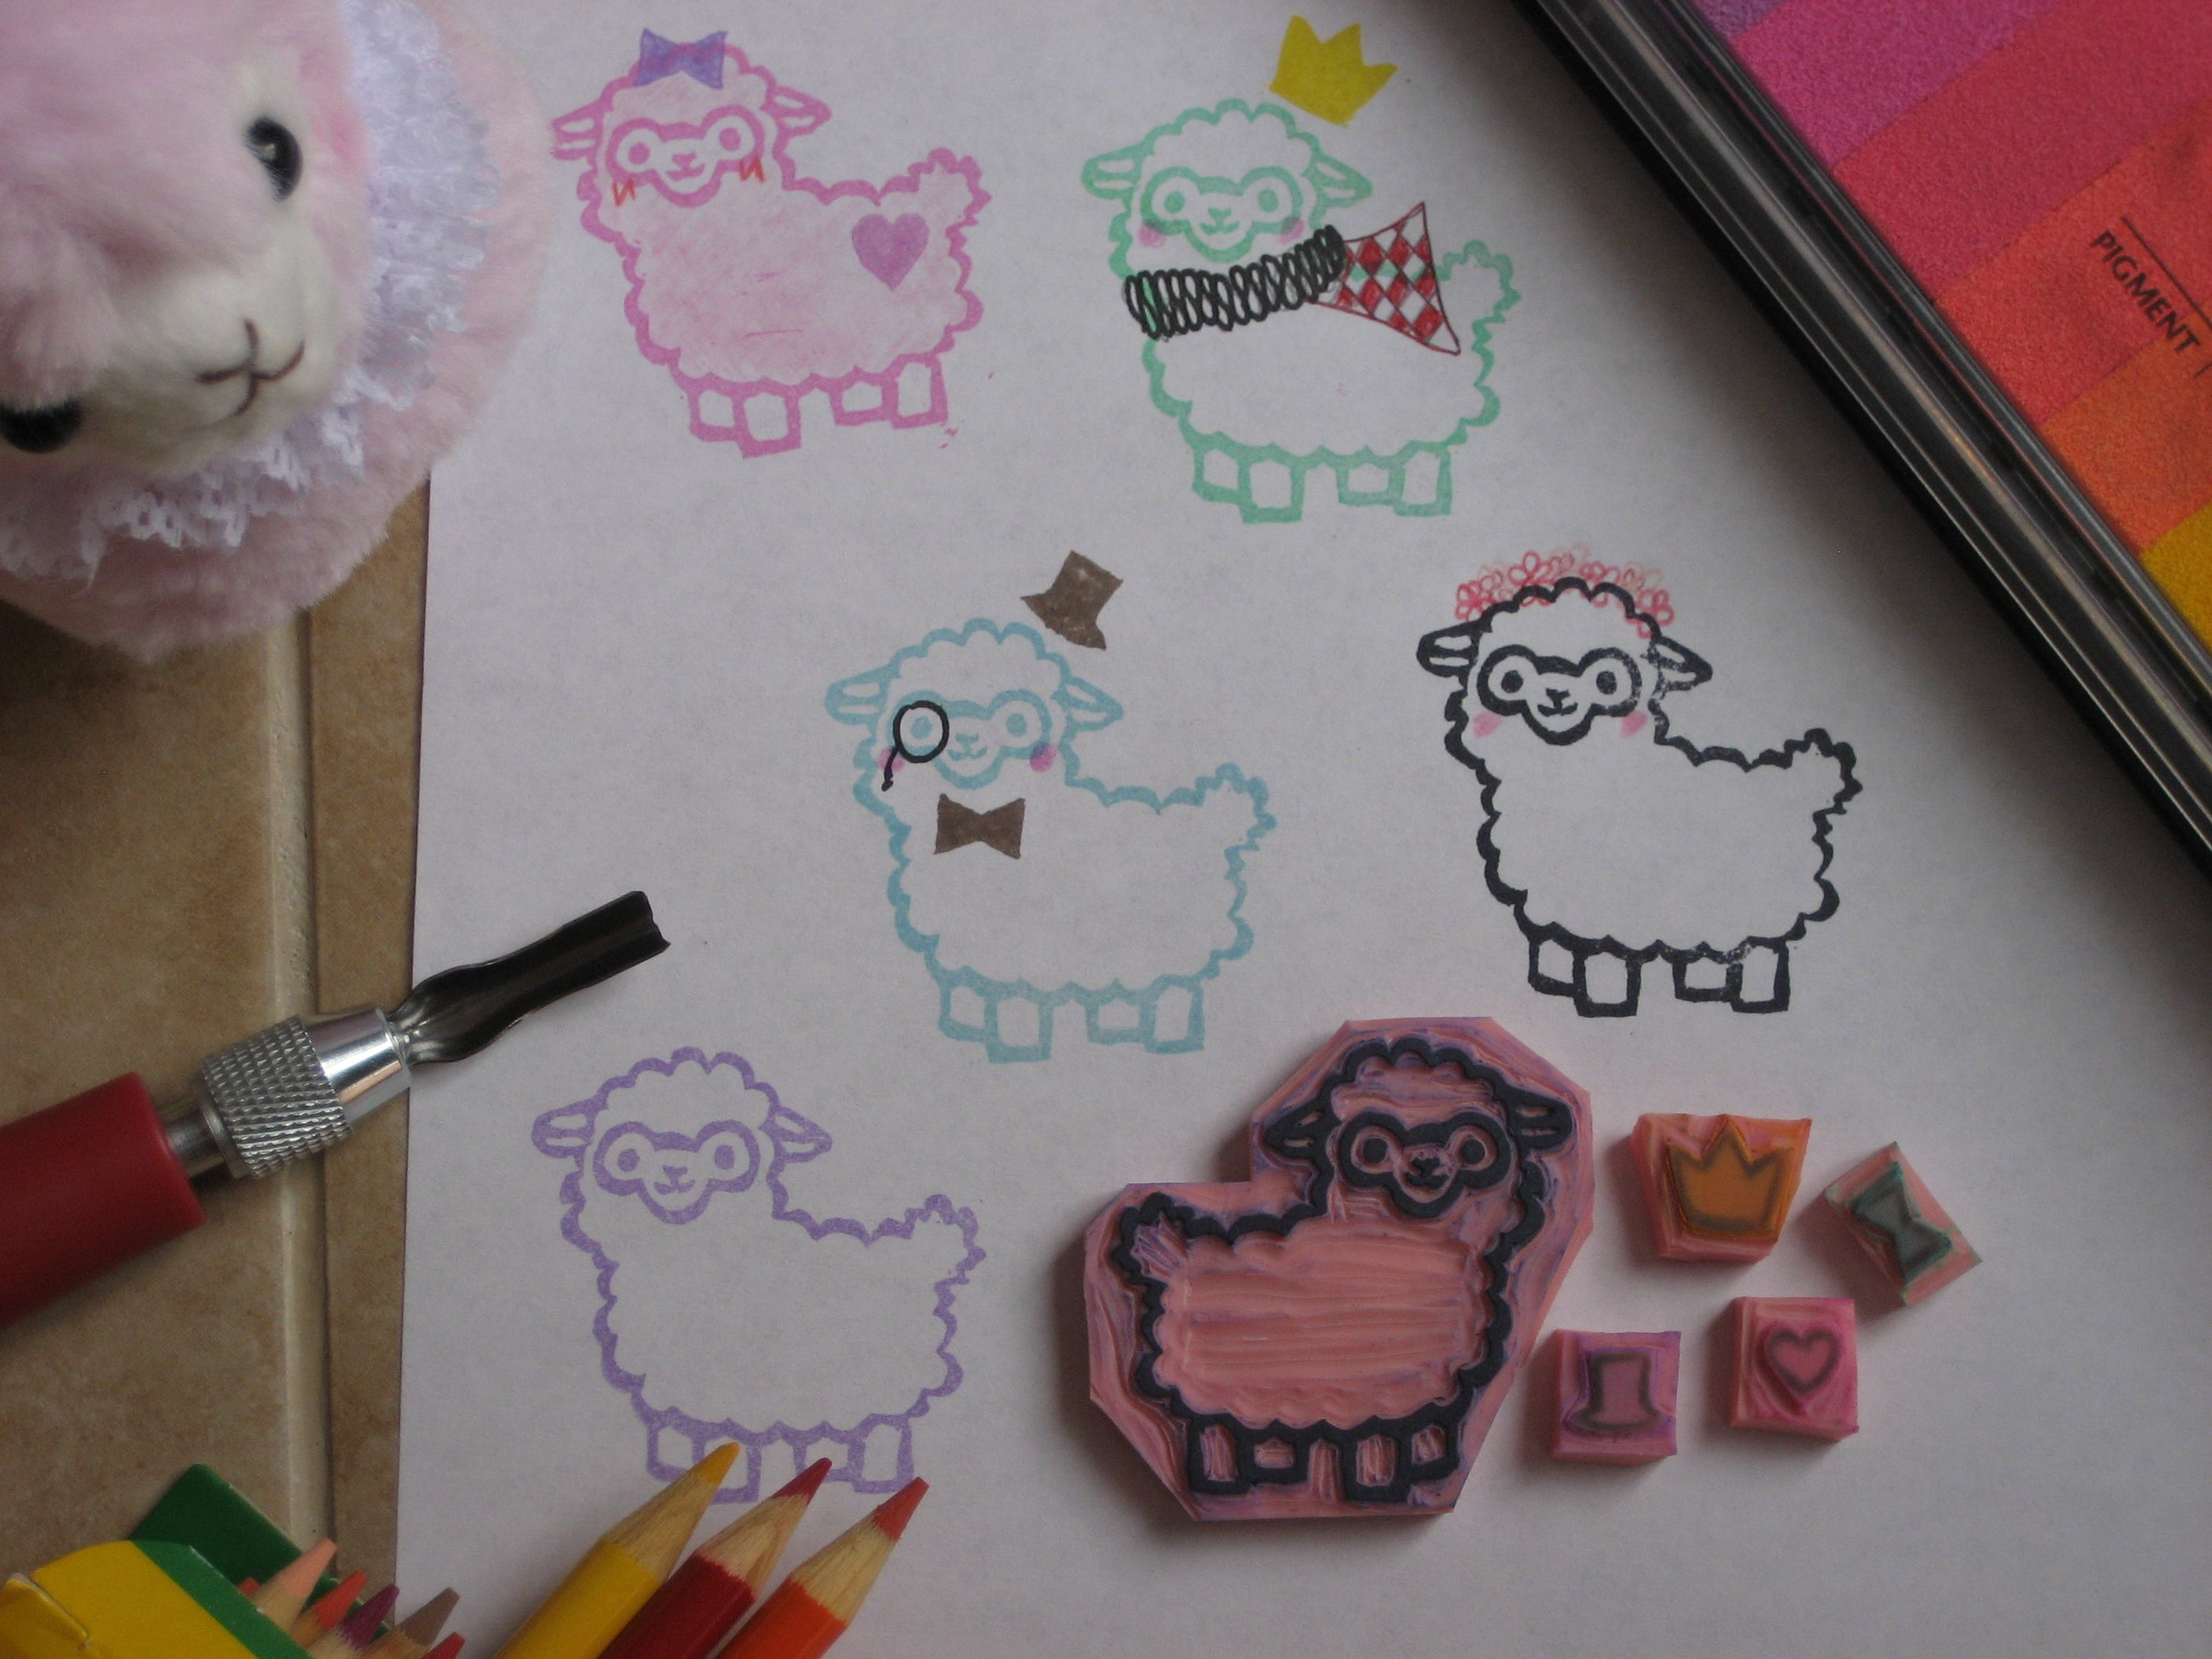 This listing is for 5 individual stamps 1 Alpaca, 1 crown